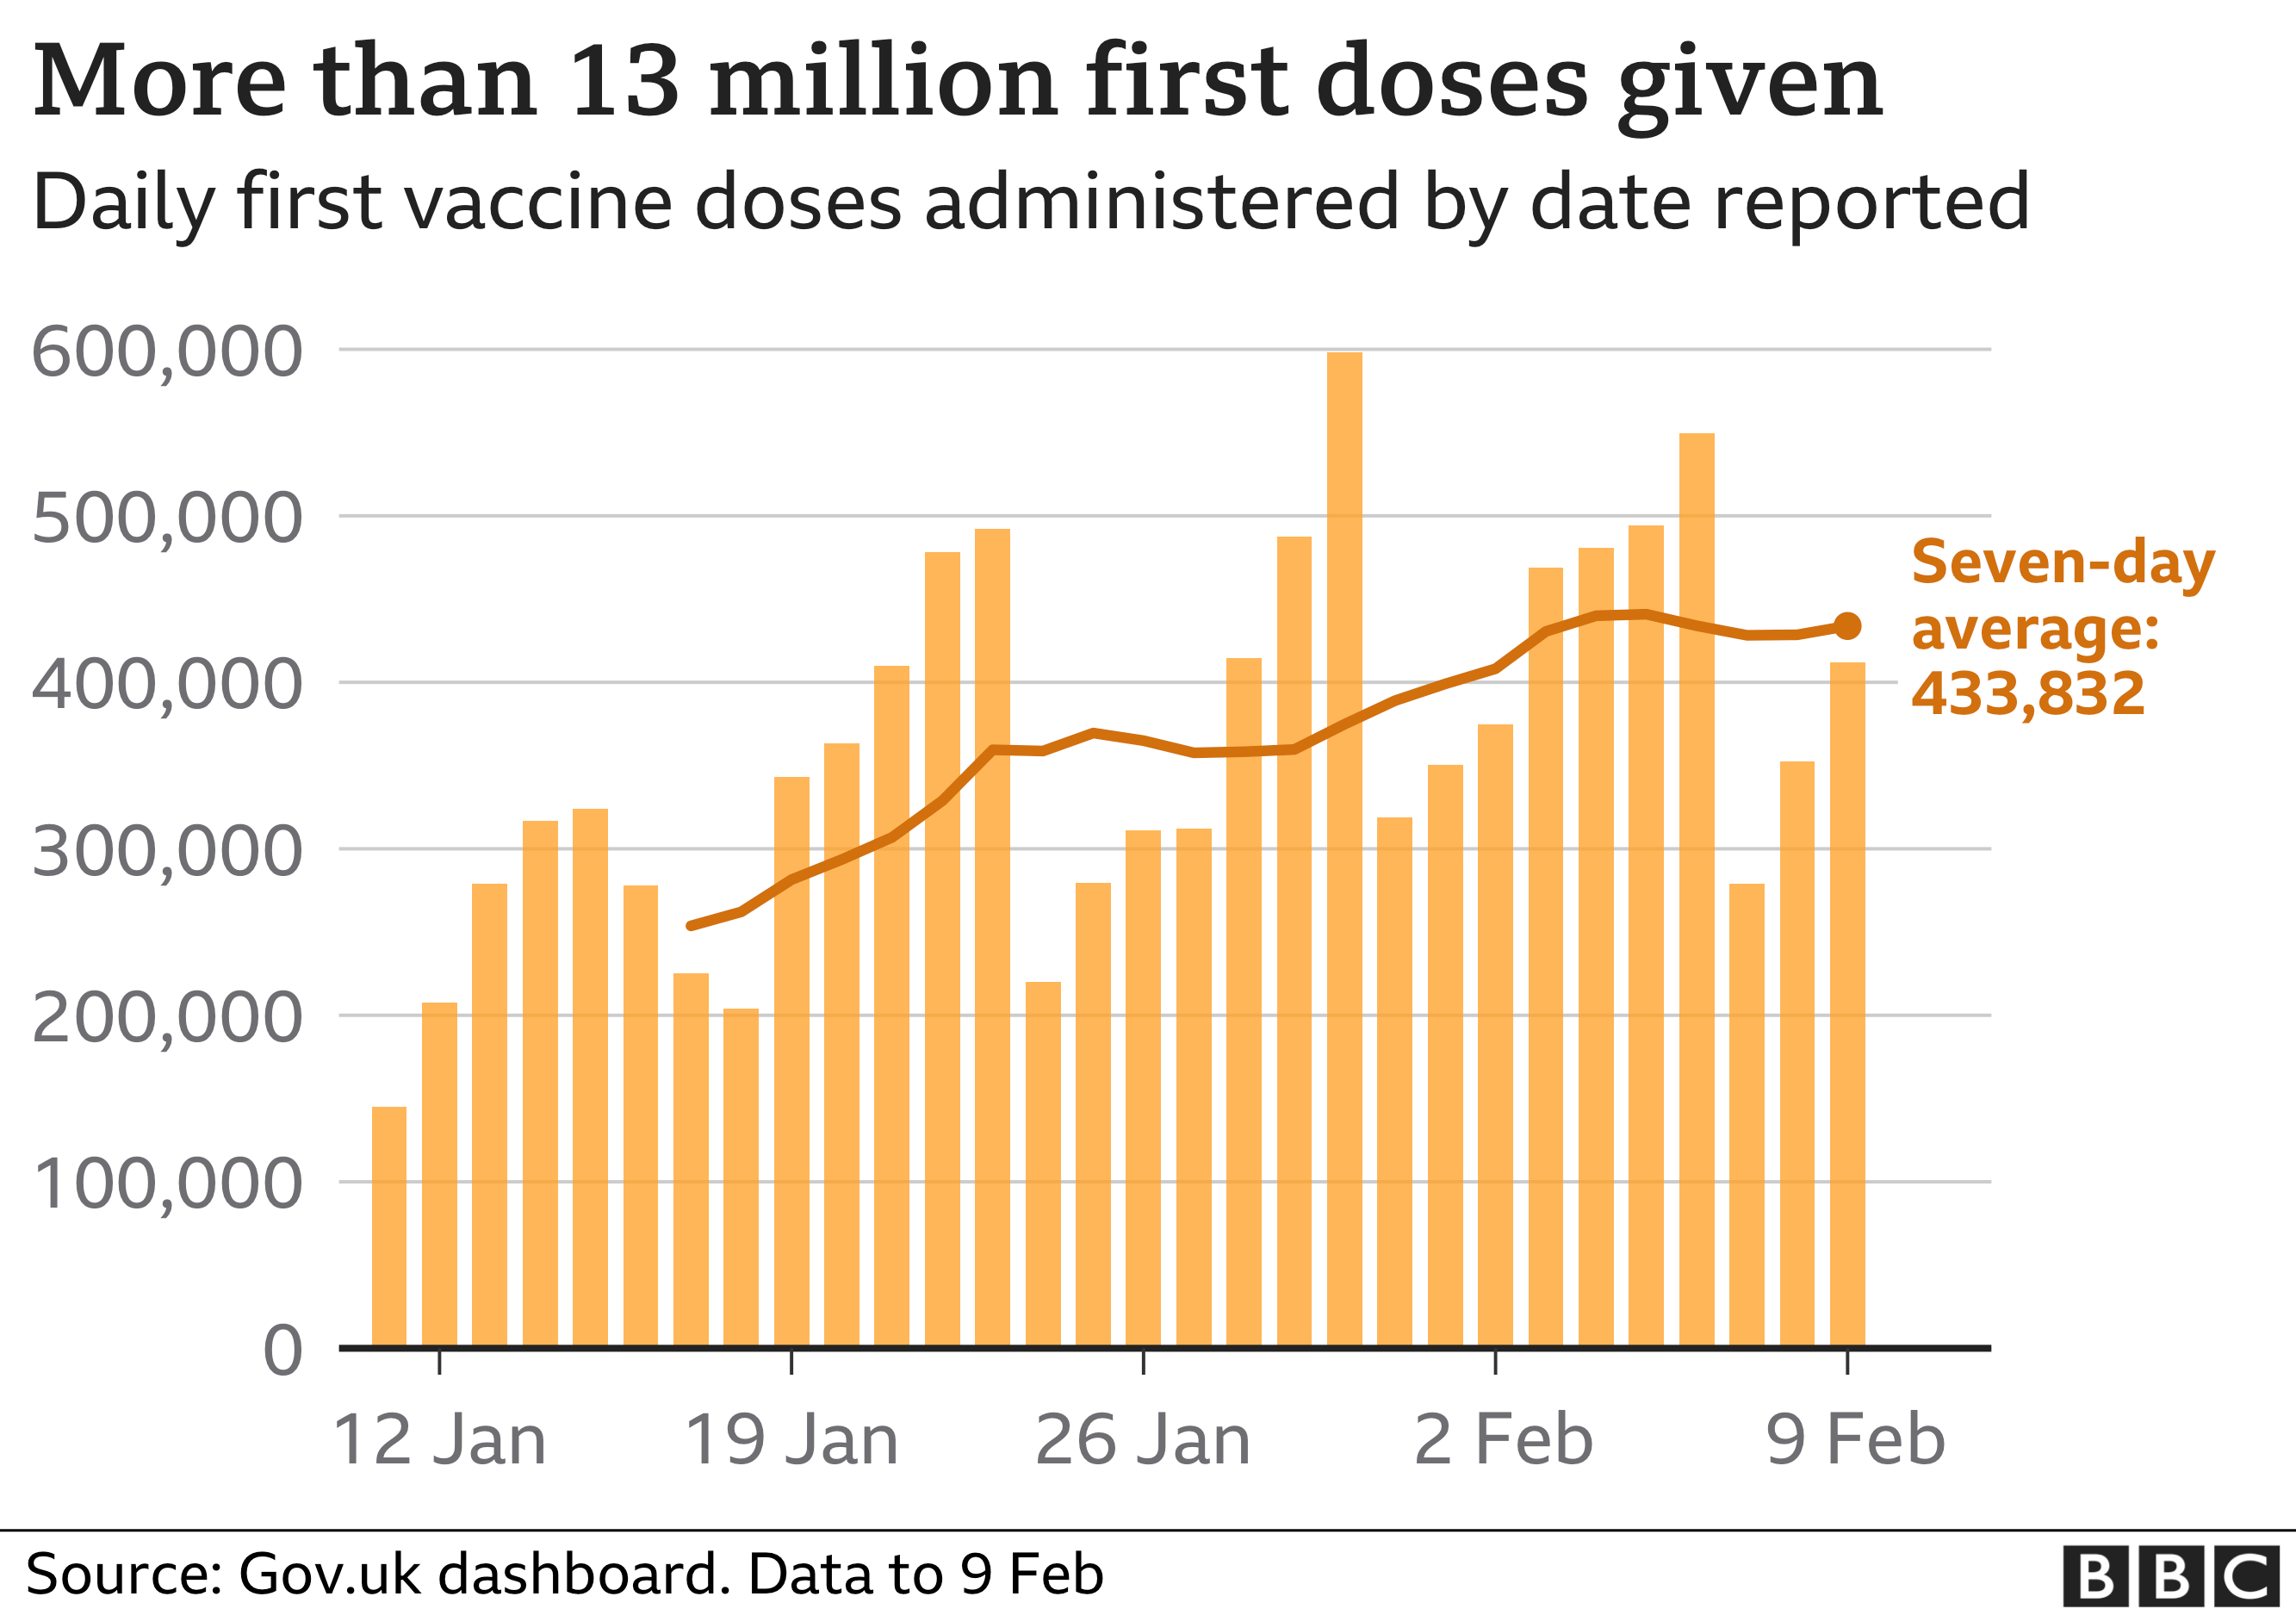 Graph showing UK vaccination data